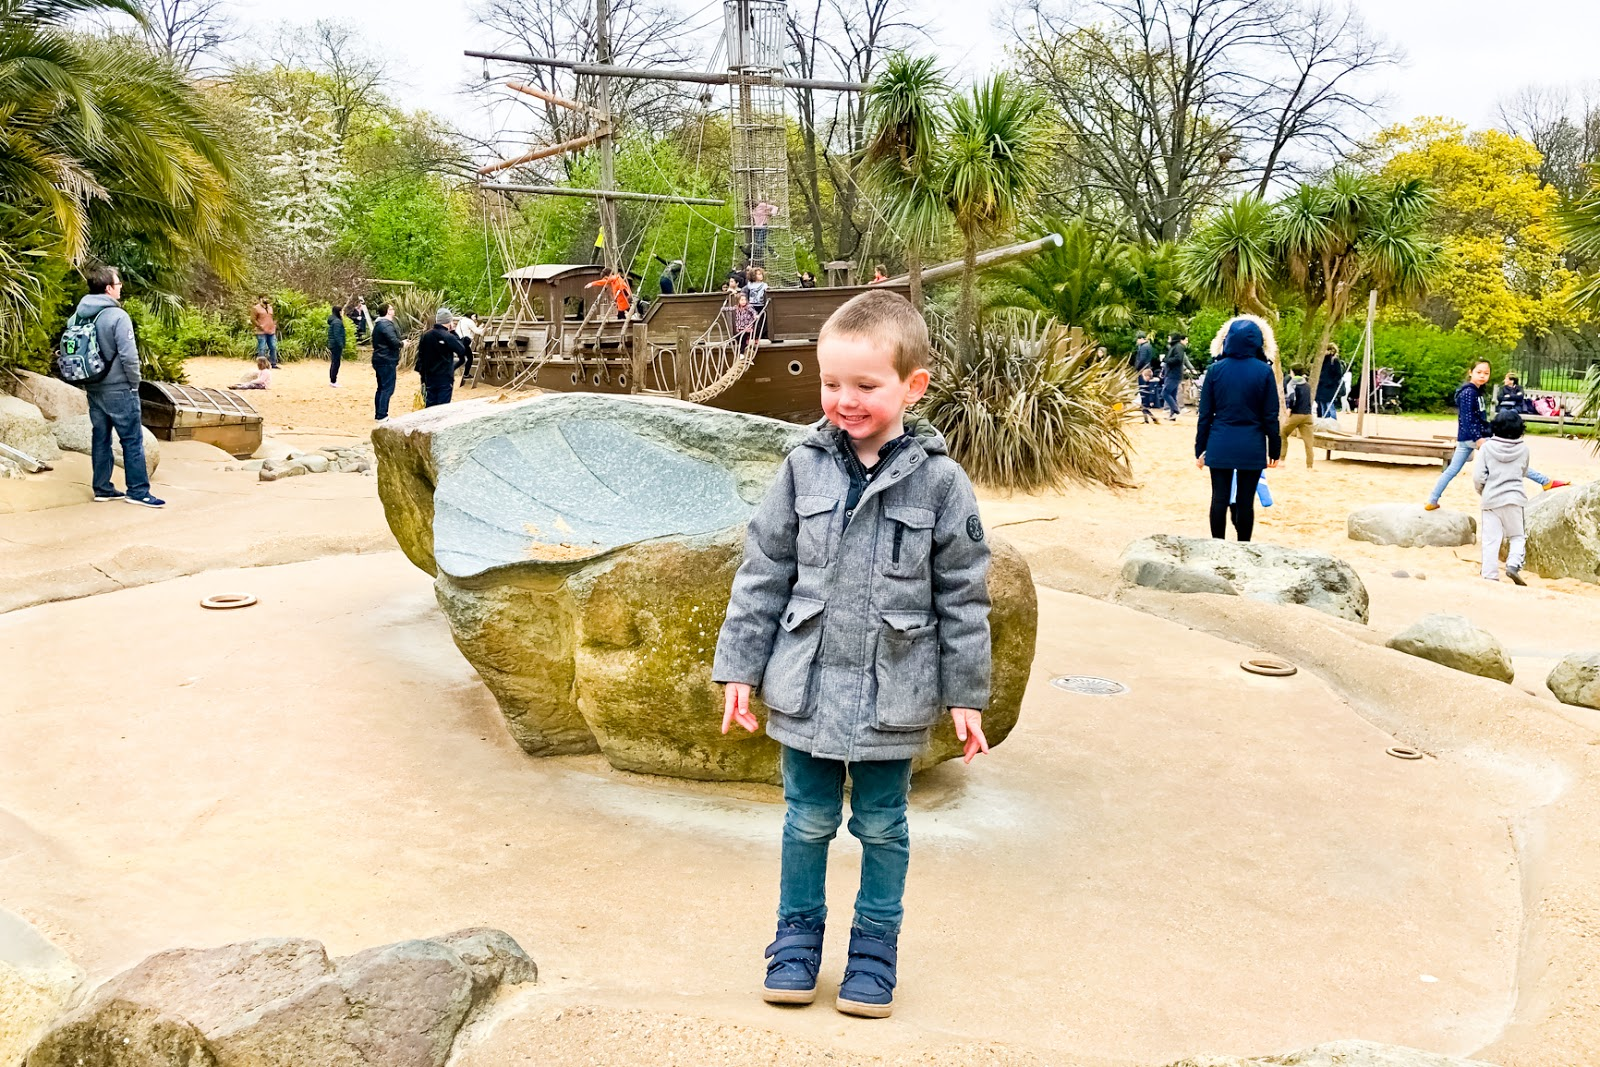 London With Keetoo, Kensington Palace, Keetoo app, Family days out London,